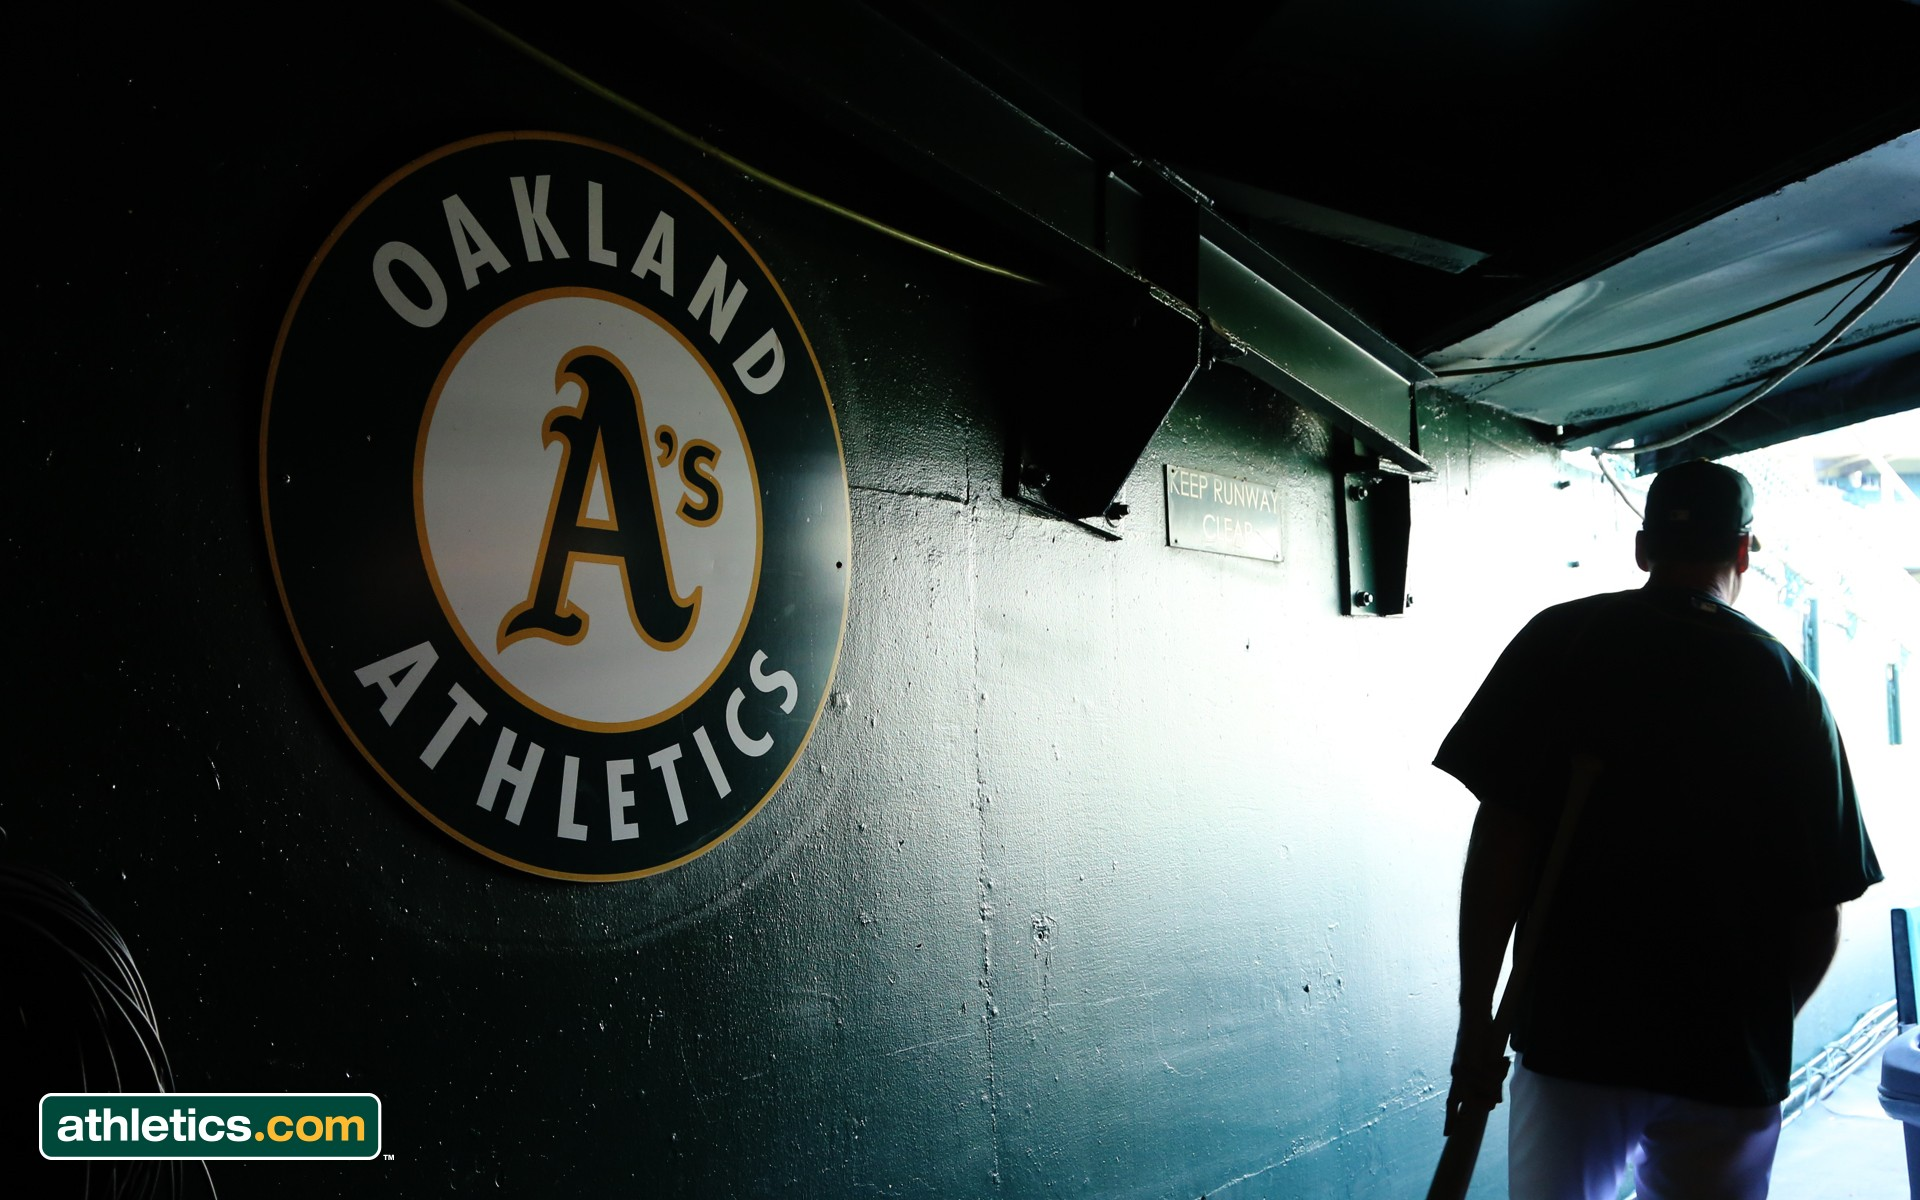 Oakland Athletics Wallpaper 9   1920 X 1200 stmednet 1920x1200